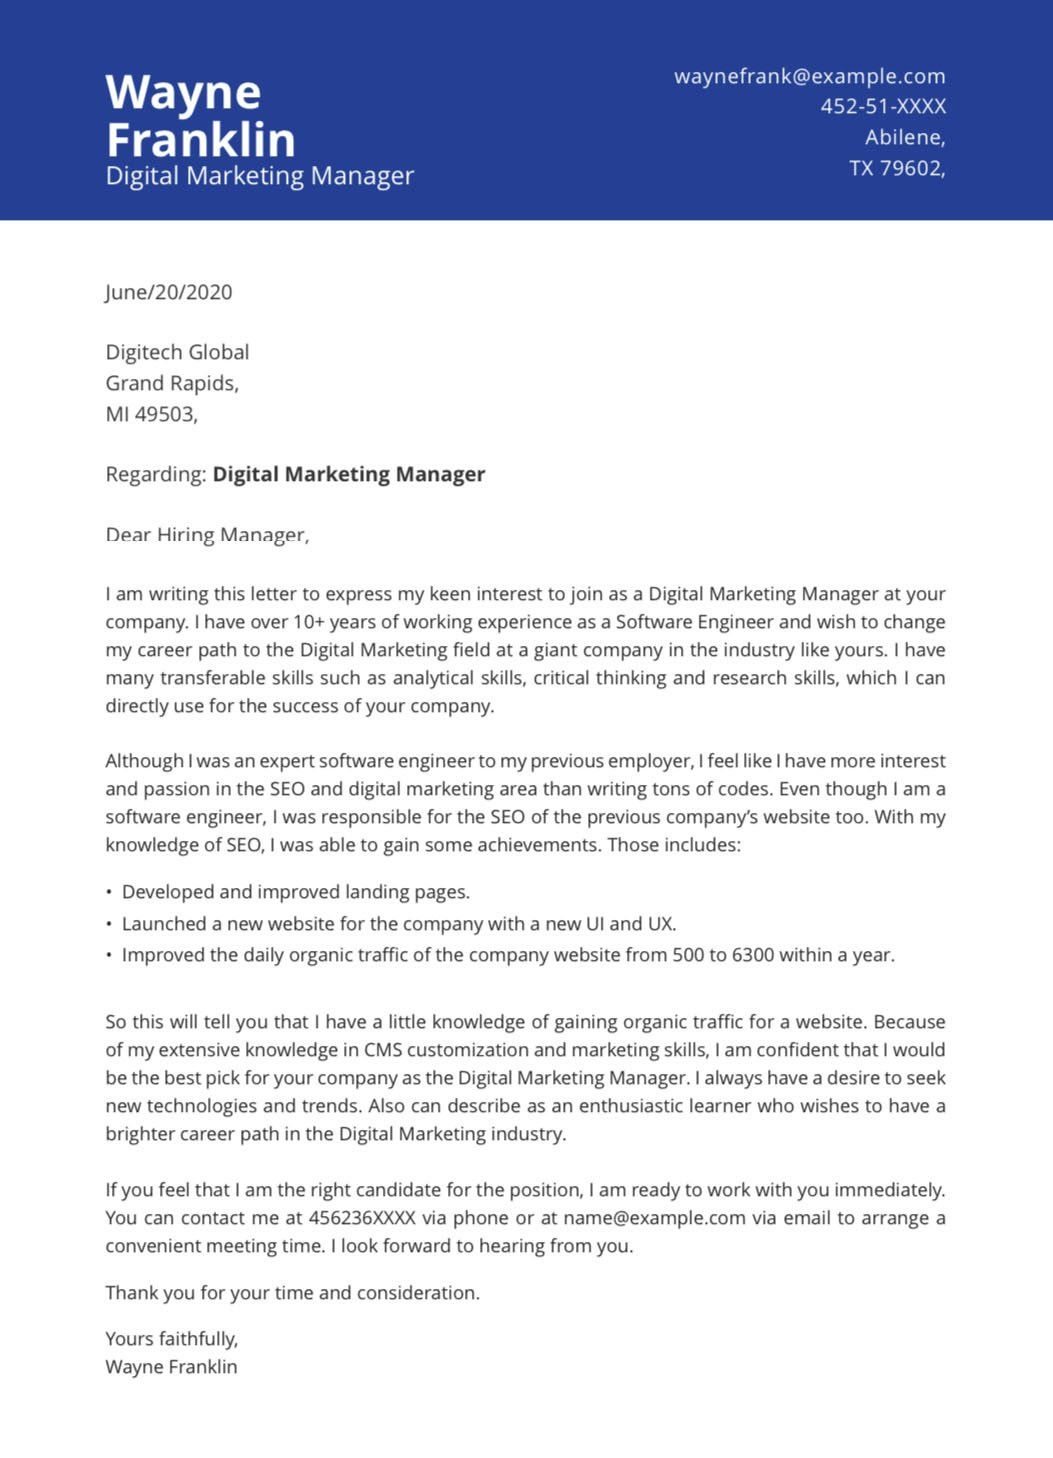 Pin On Cover Letter Templates Design